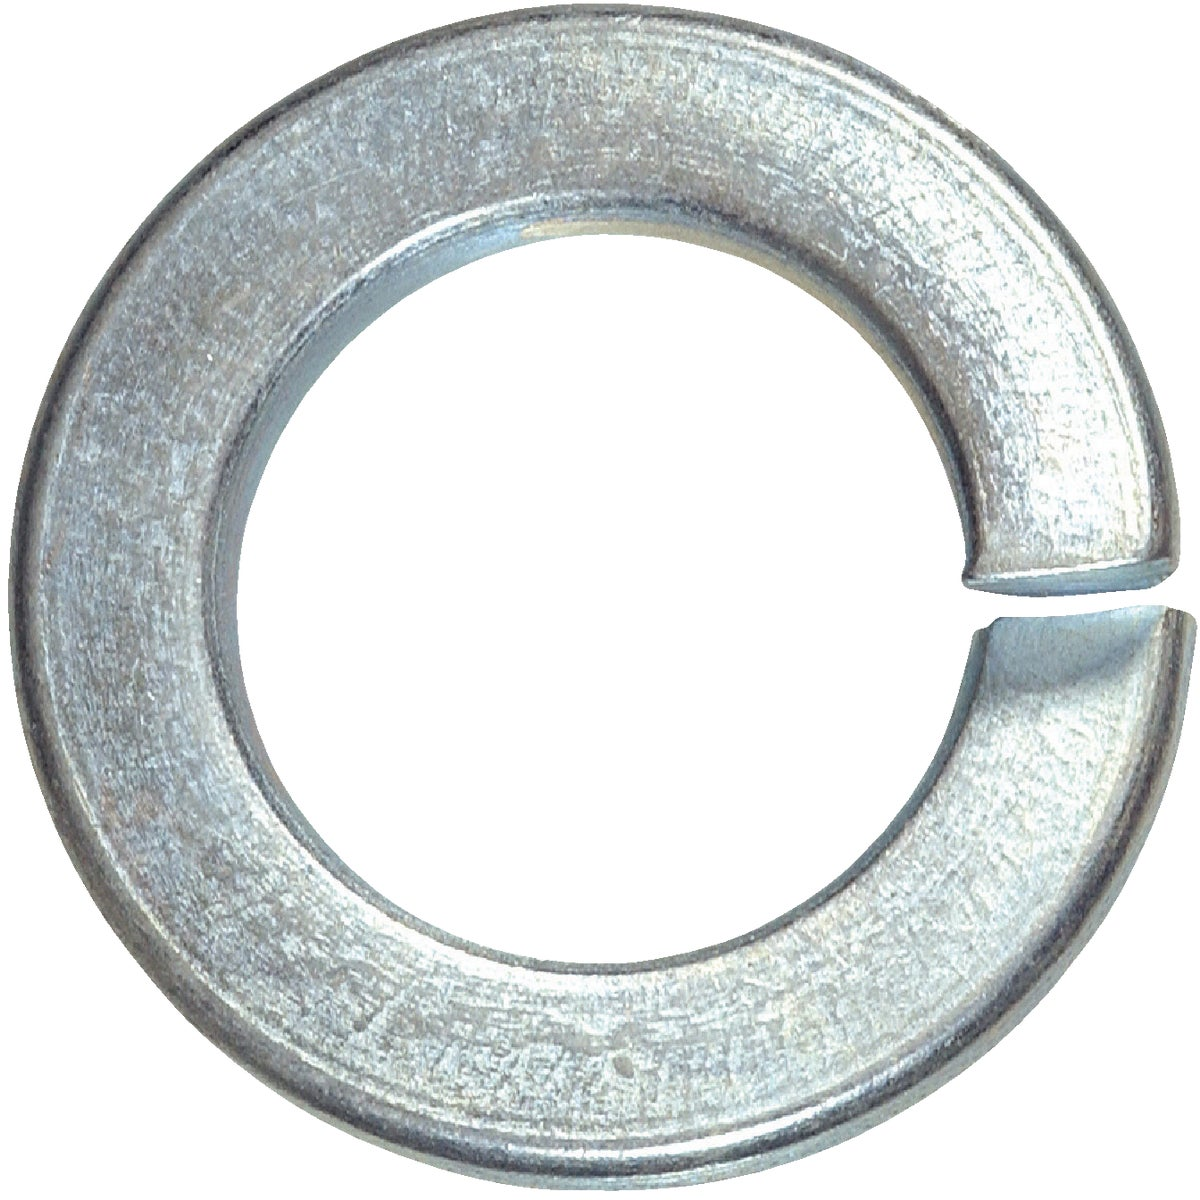 "20PC 3/4"" LOCK WASHER - 300039 by Hillman Fastener"